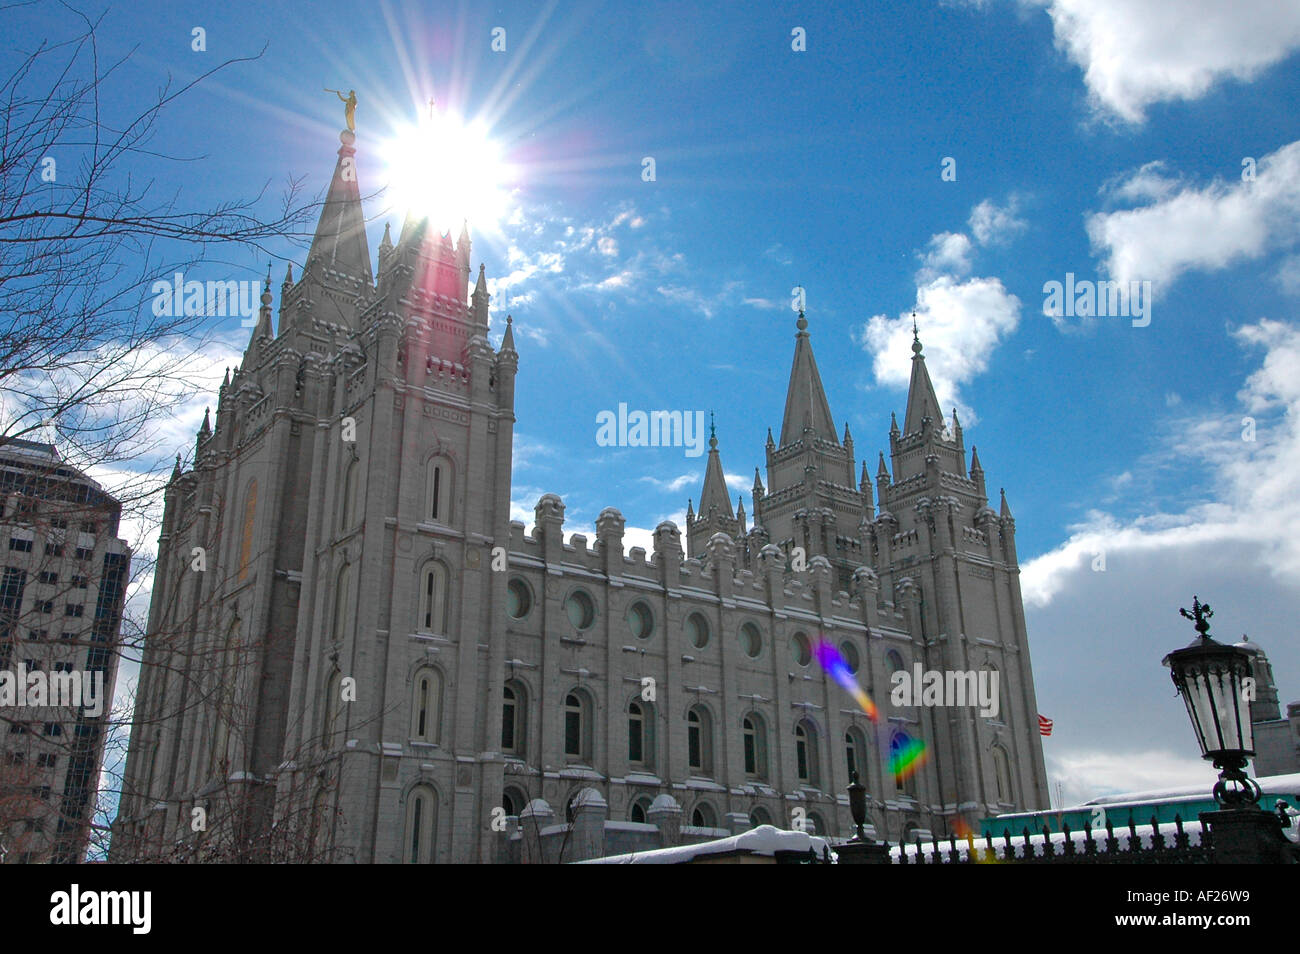 Lds Temple Stock Photos & Lds Temple Stock Images - Alamy